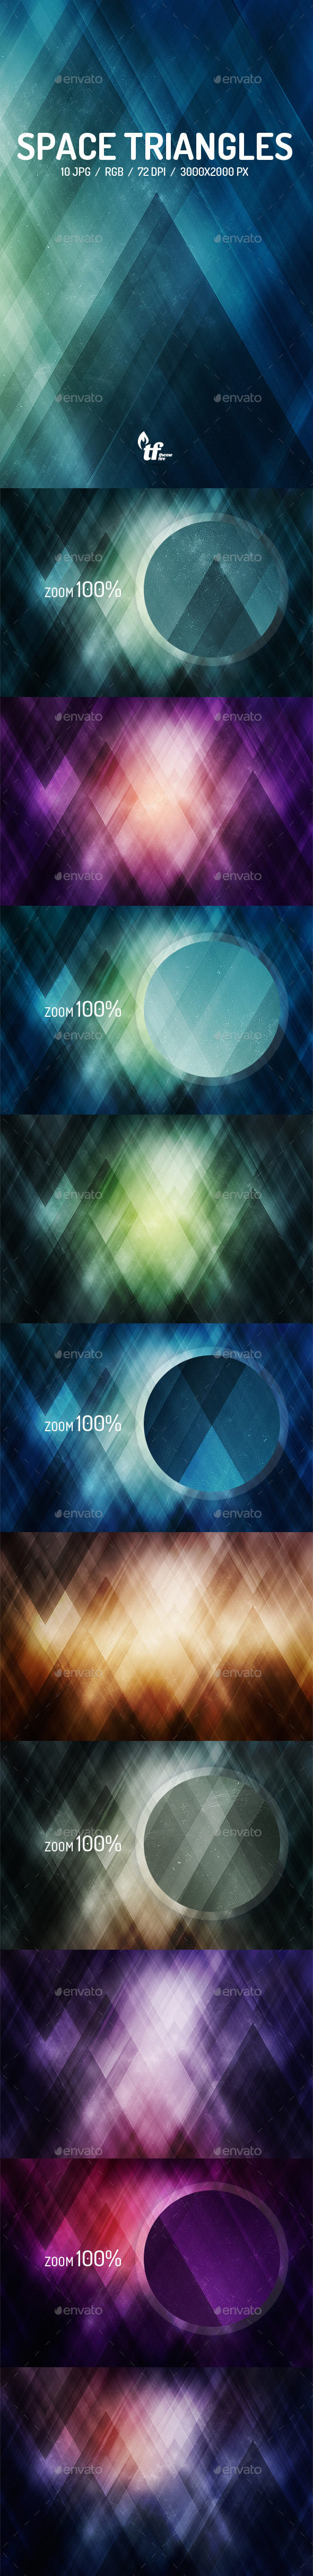 GraphicRiver Space Triangles Backgrounds 9088678